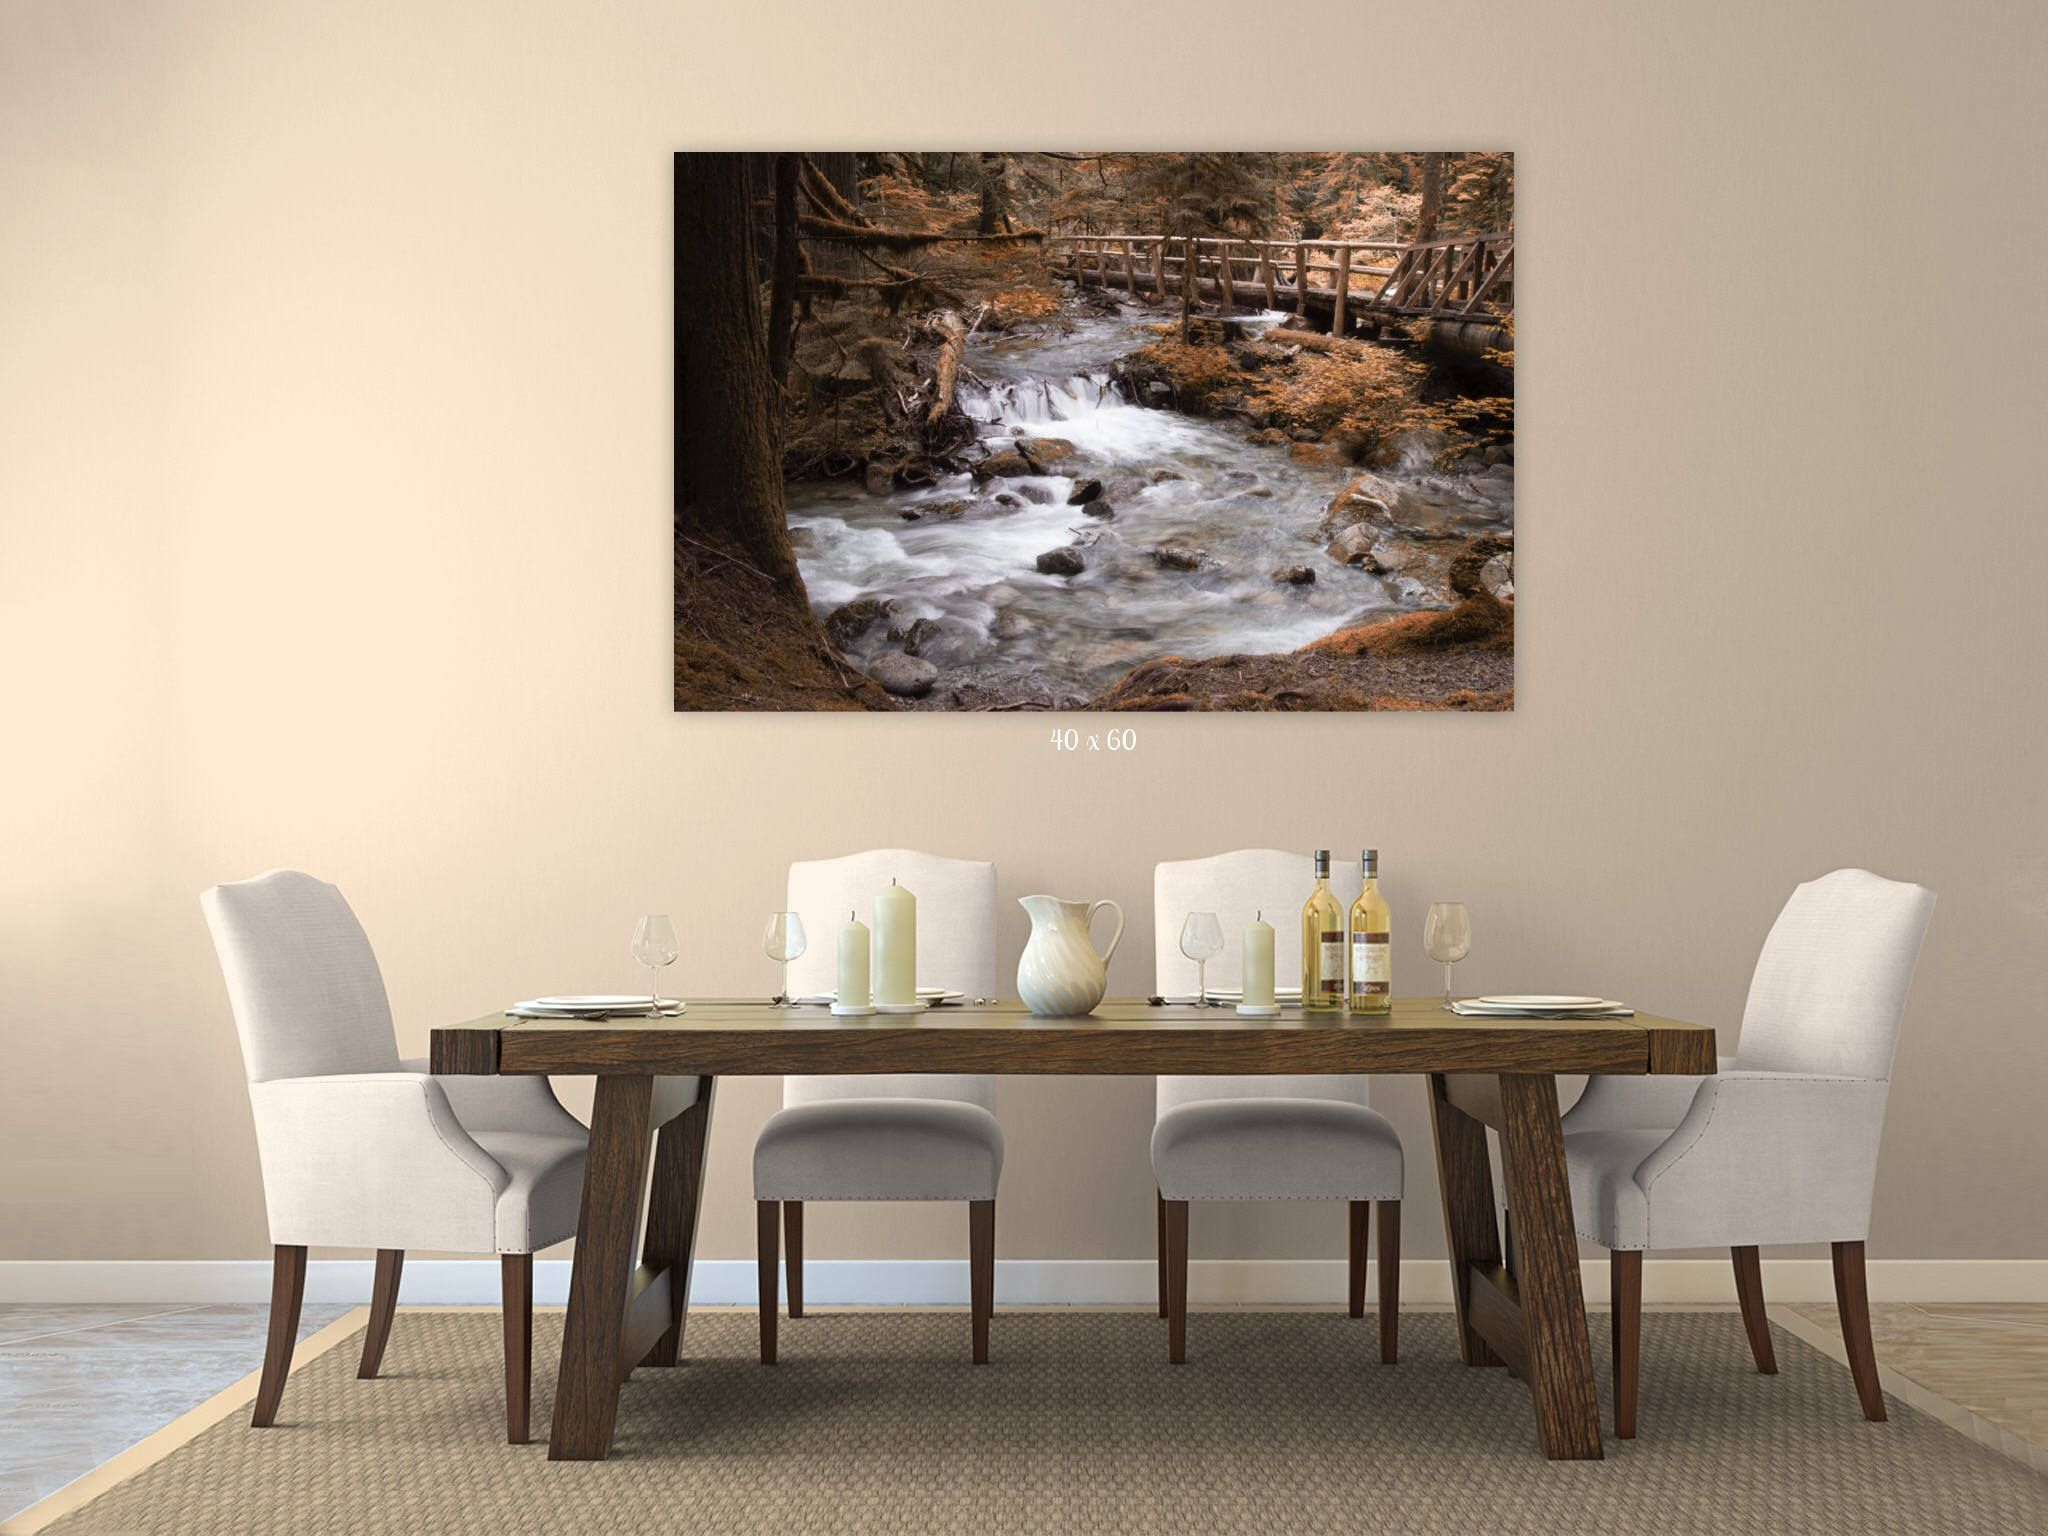 Large Prints Commercial Art Photography Wall Hotel Décor Hospital